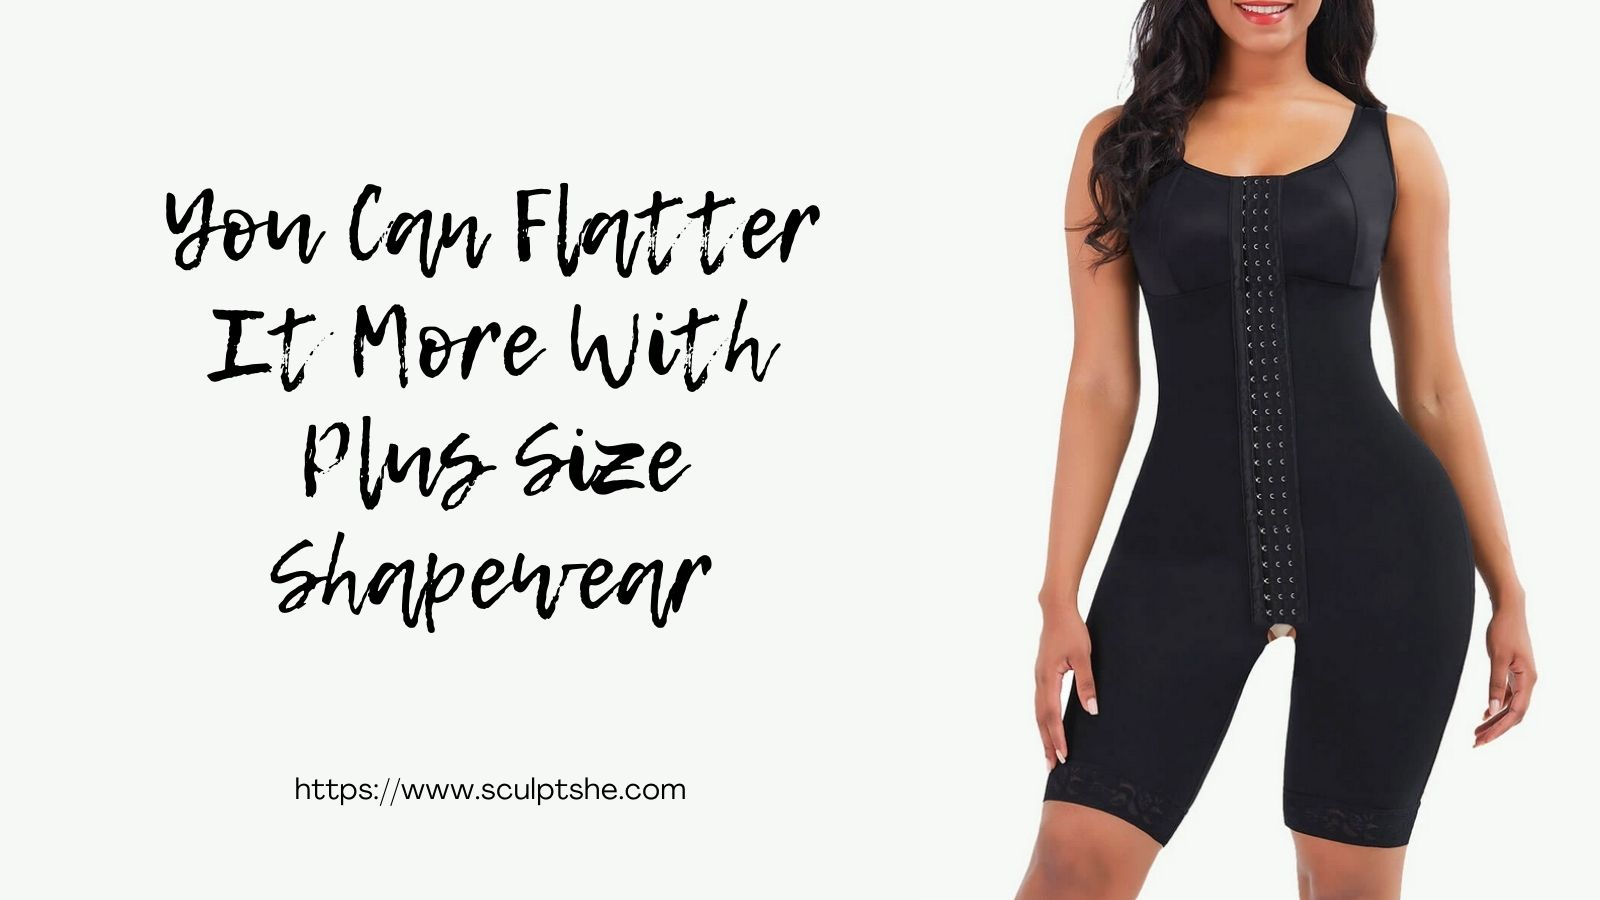 You Can Flatter It More With Plus Size Shapewear